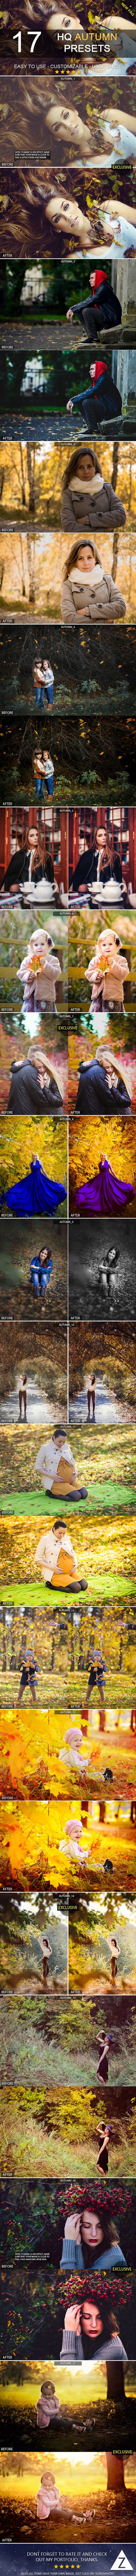 17 HQ Autumn Presets